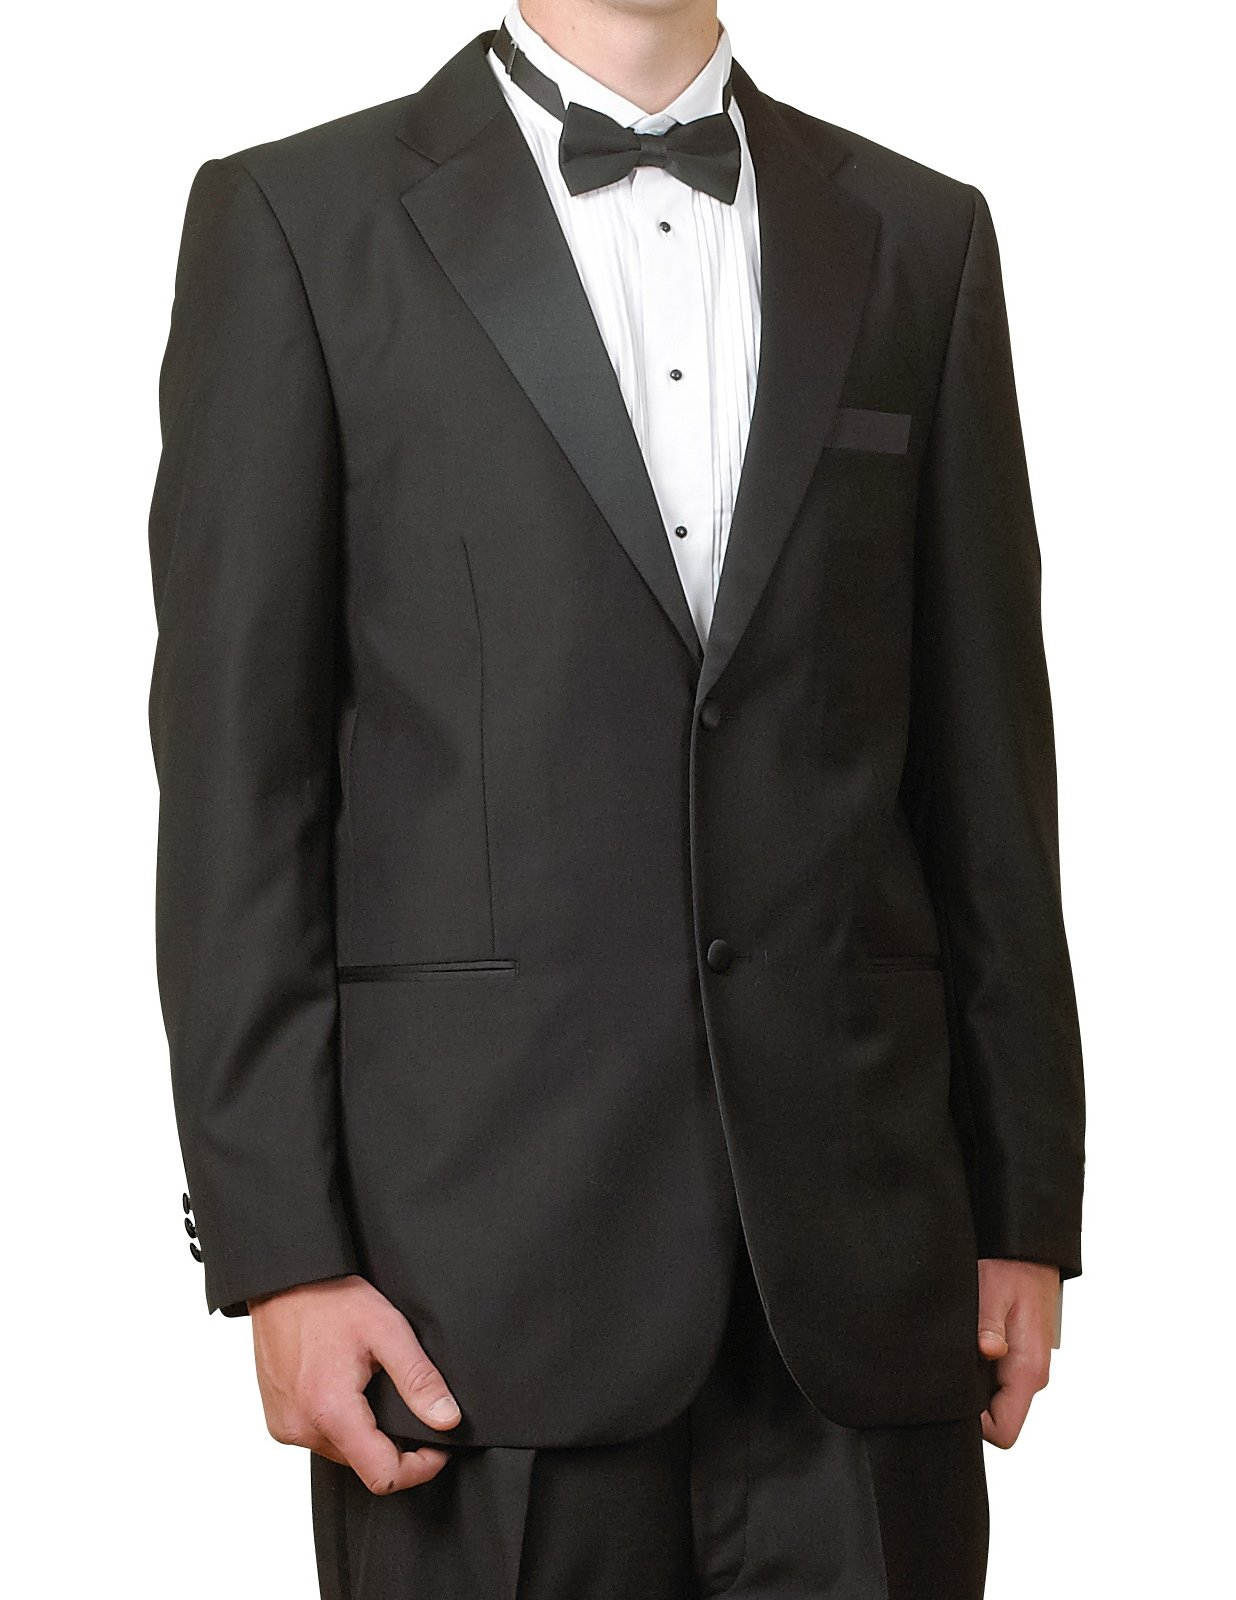 New Mens 2 Button Black Tuxedo Suit, size 56 Regular - Includes Jacket and Pants